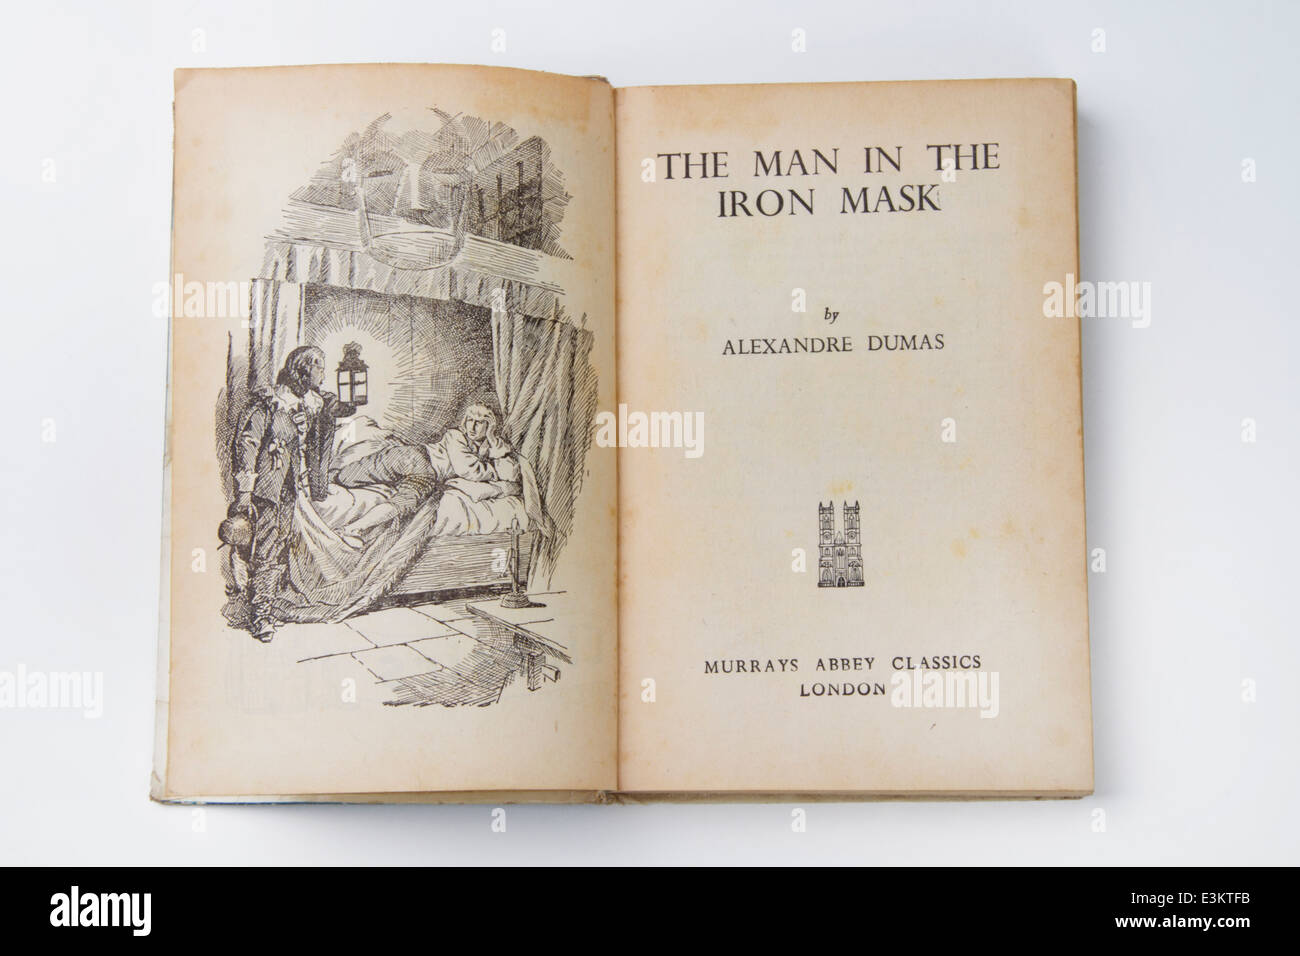 Illustration and title page of a 1950s Abbey Classic novel entitled The Man In The Iron Mask - Stock Image